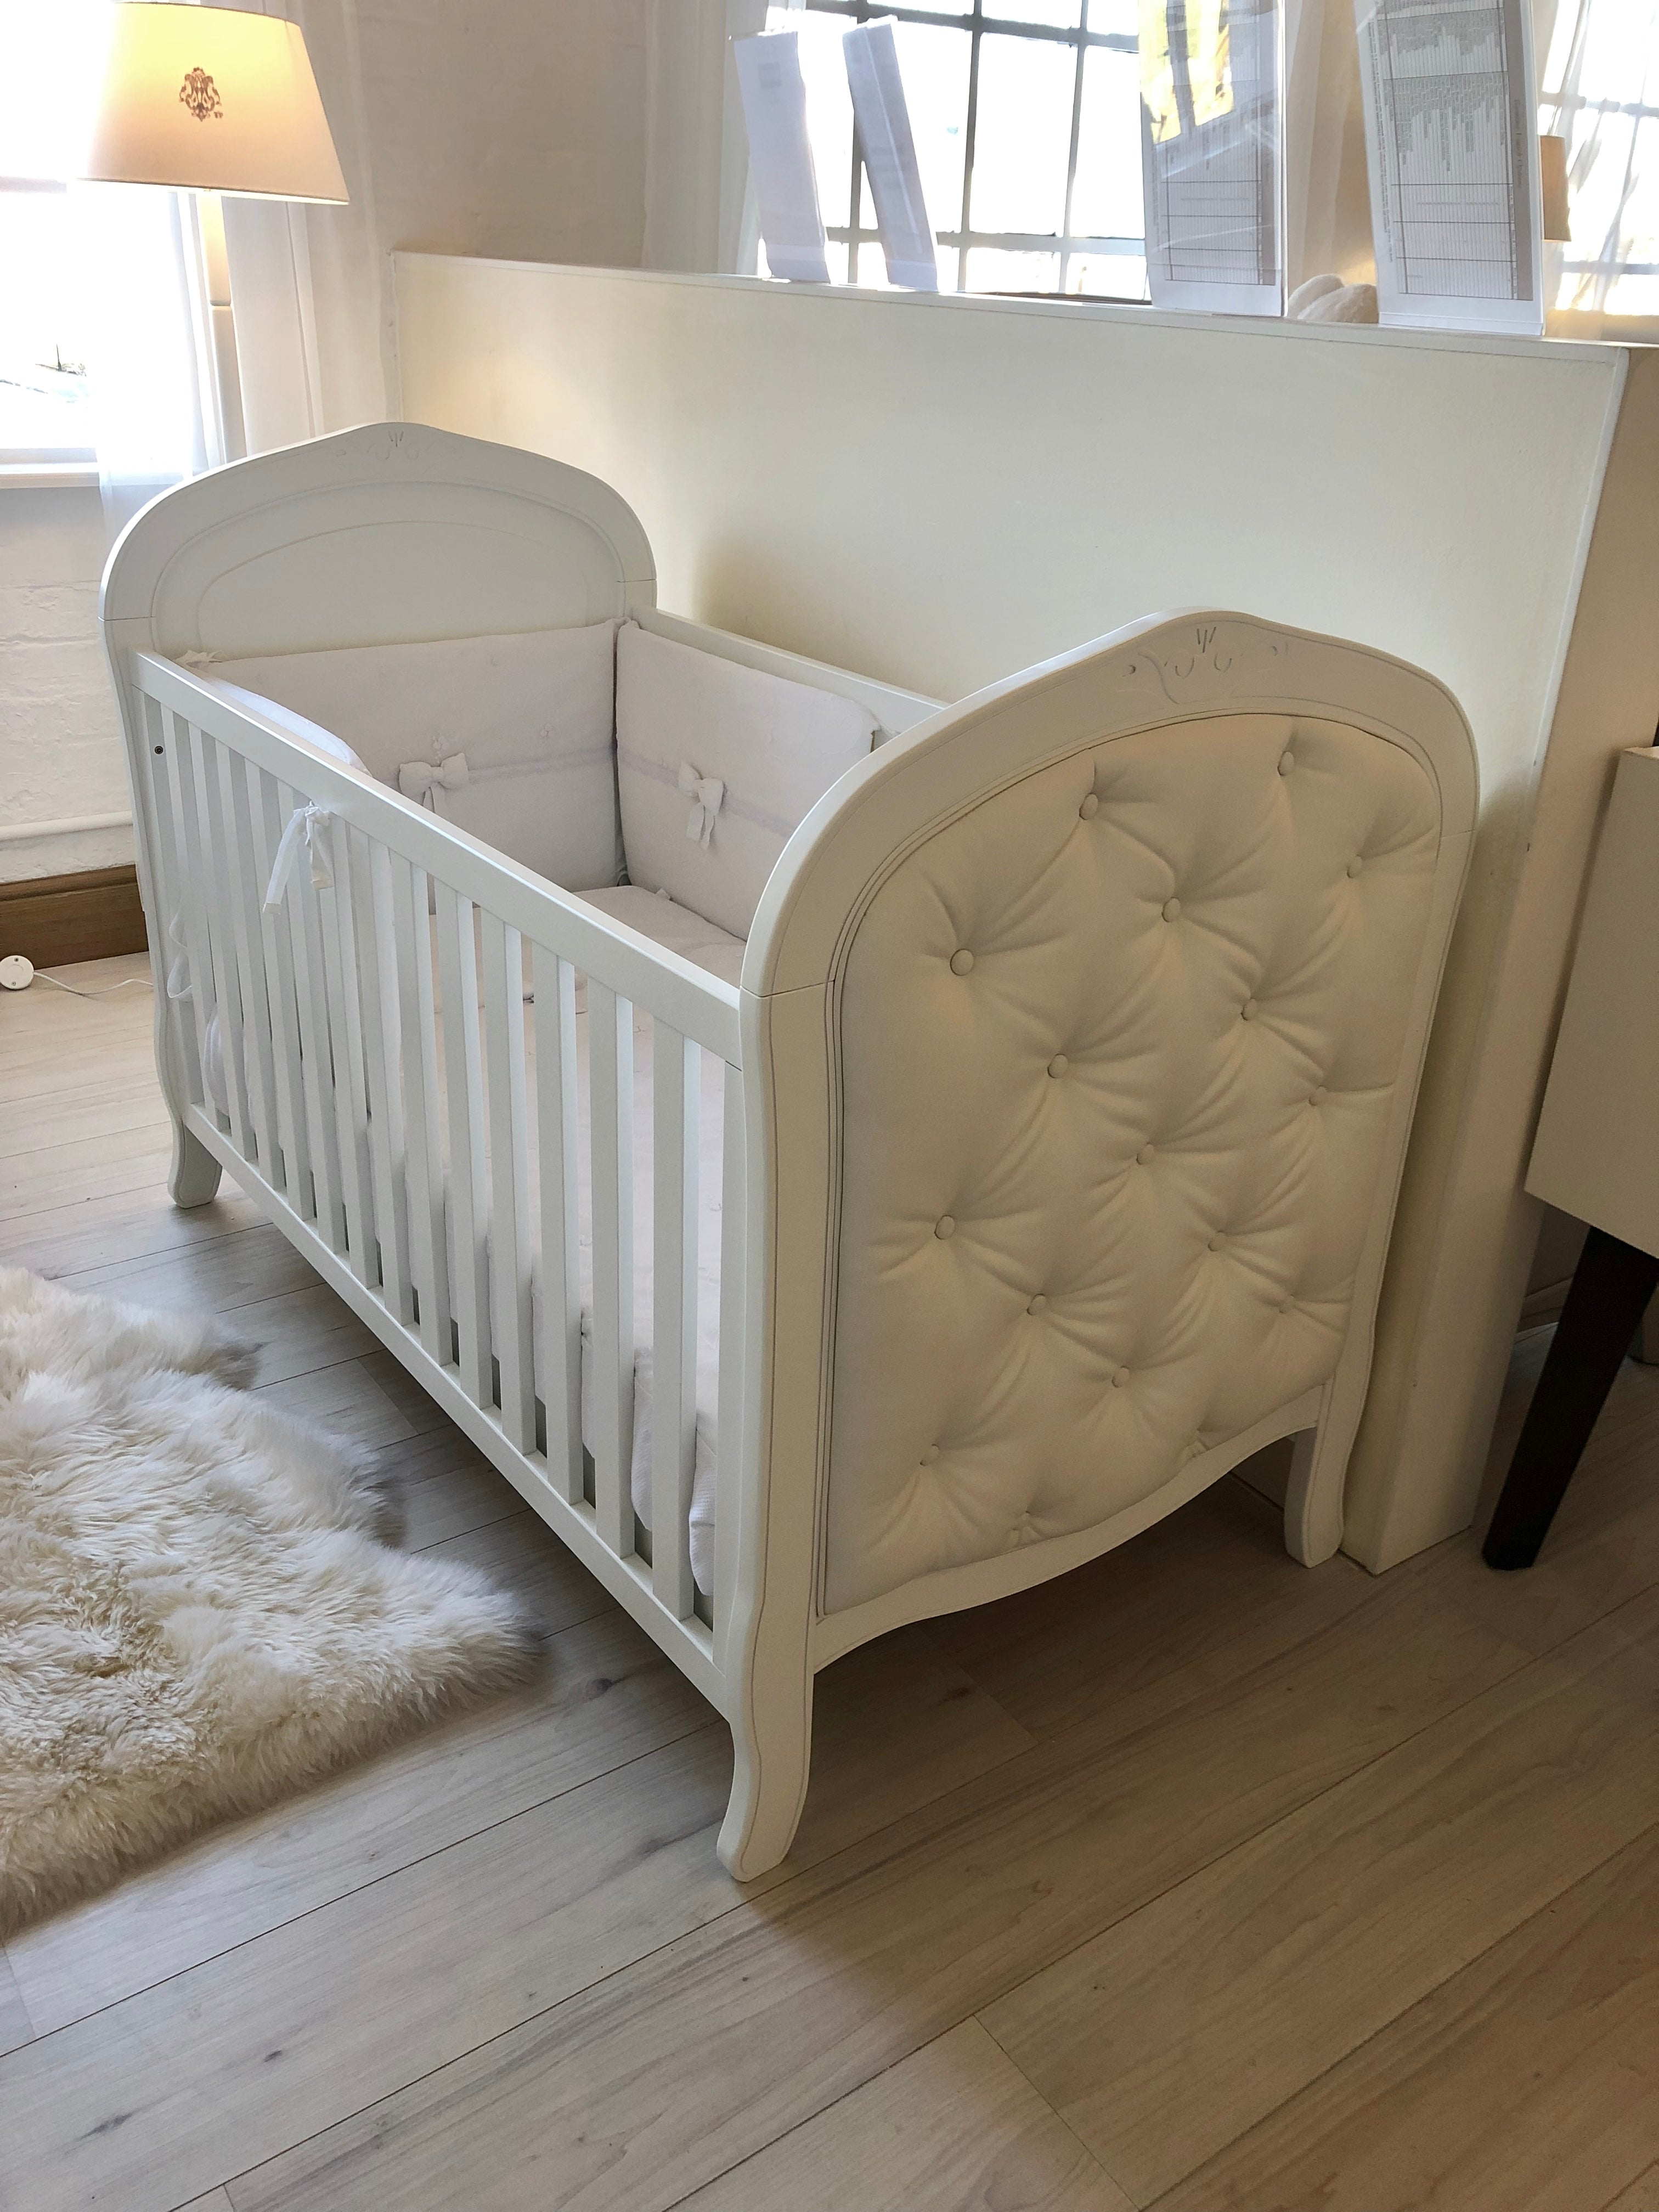 Adorable Buttoned Cot Bed 140x70 - Deleted on Shopify